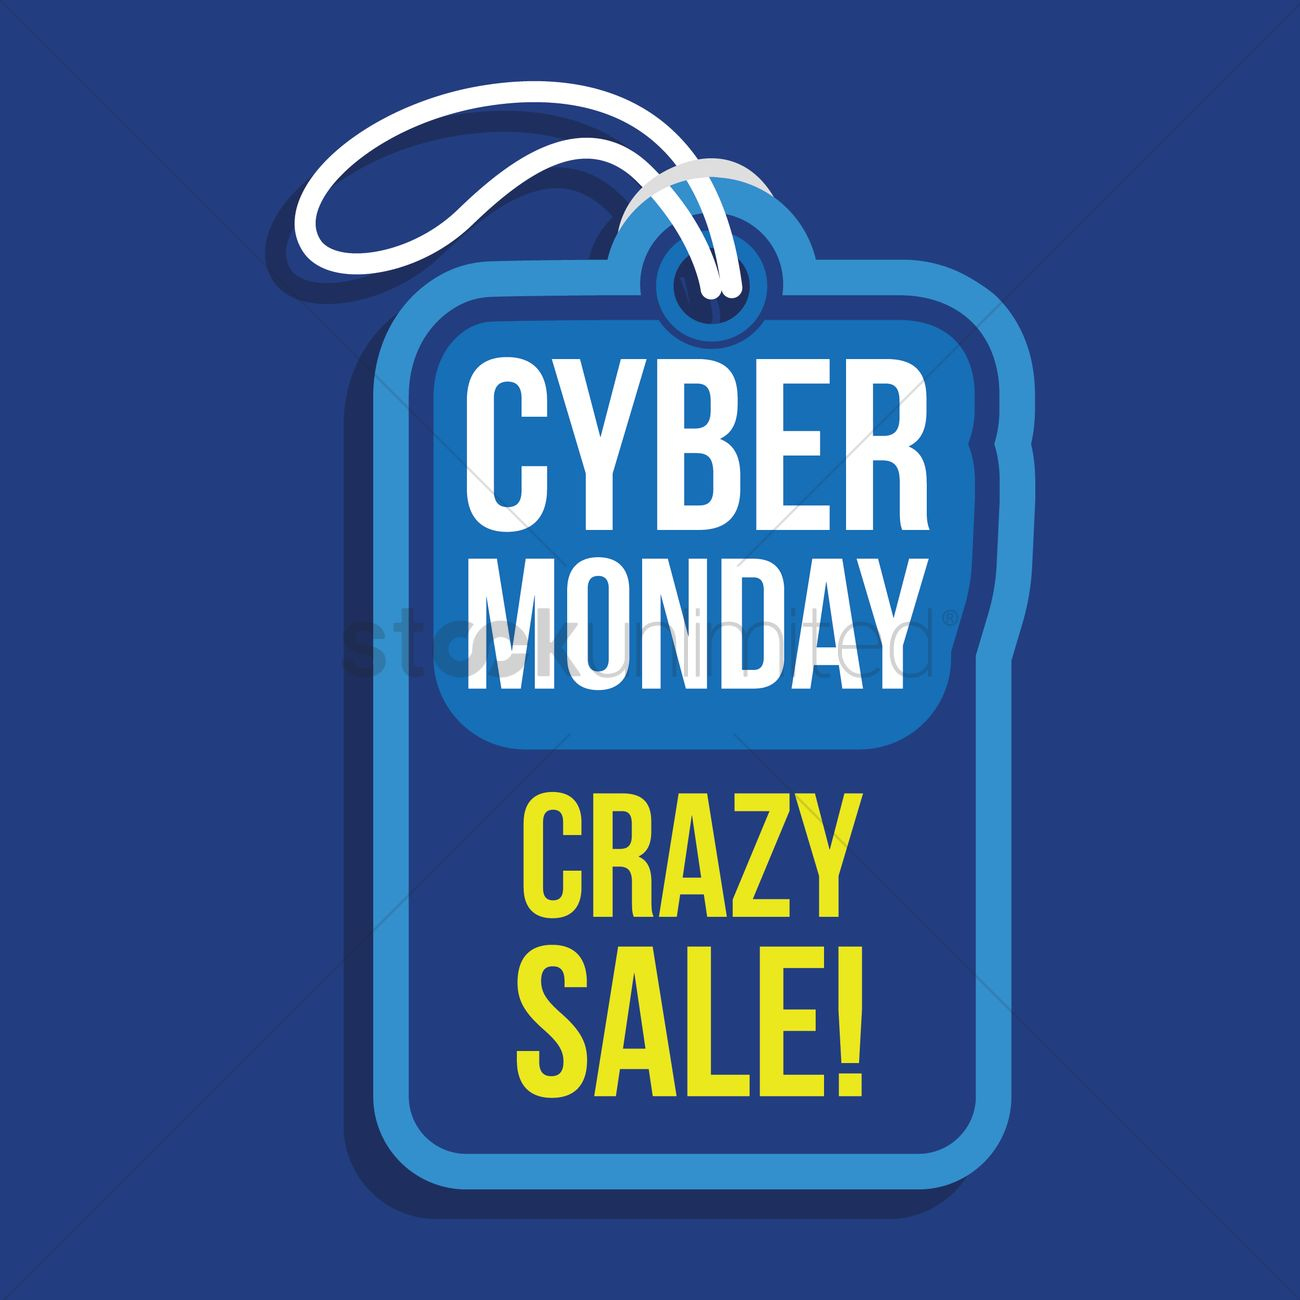 620f9965dfe Cyber monday crazy sale tag Vector Image - 1824201 | StockUnlimited